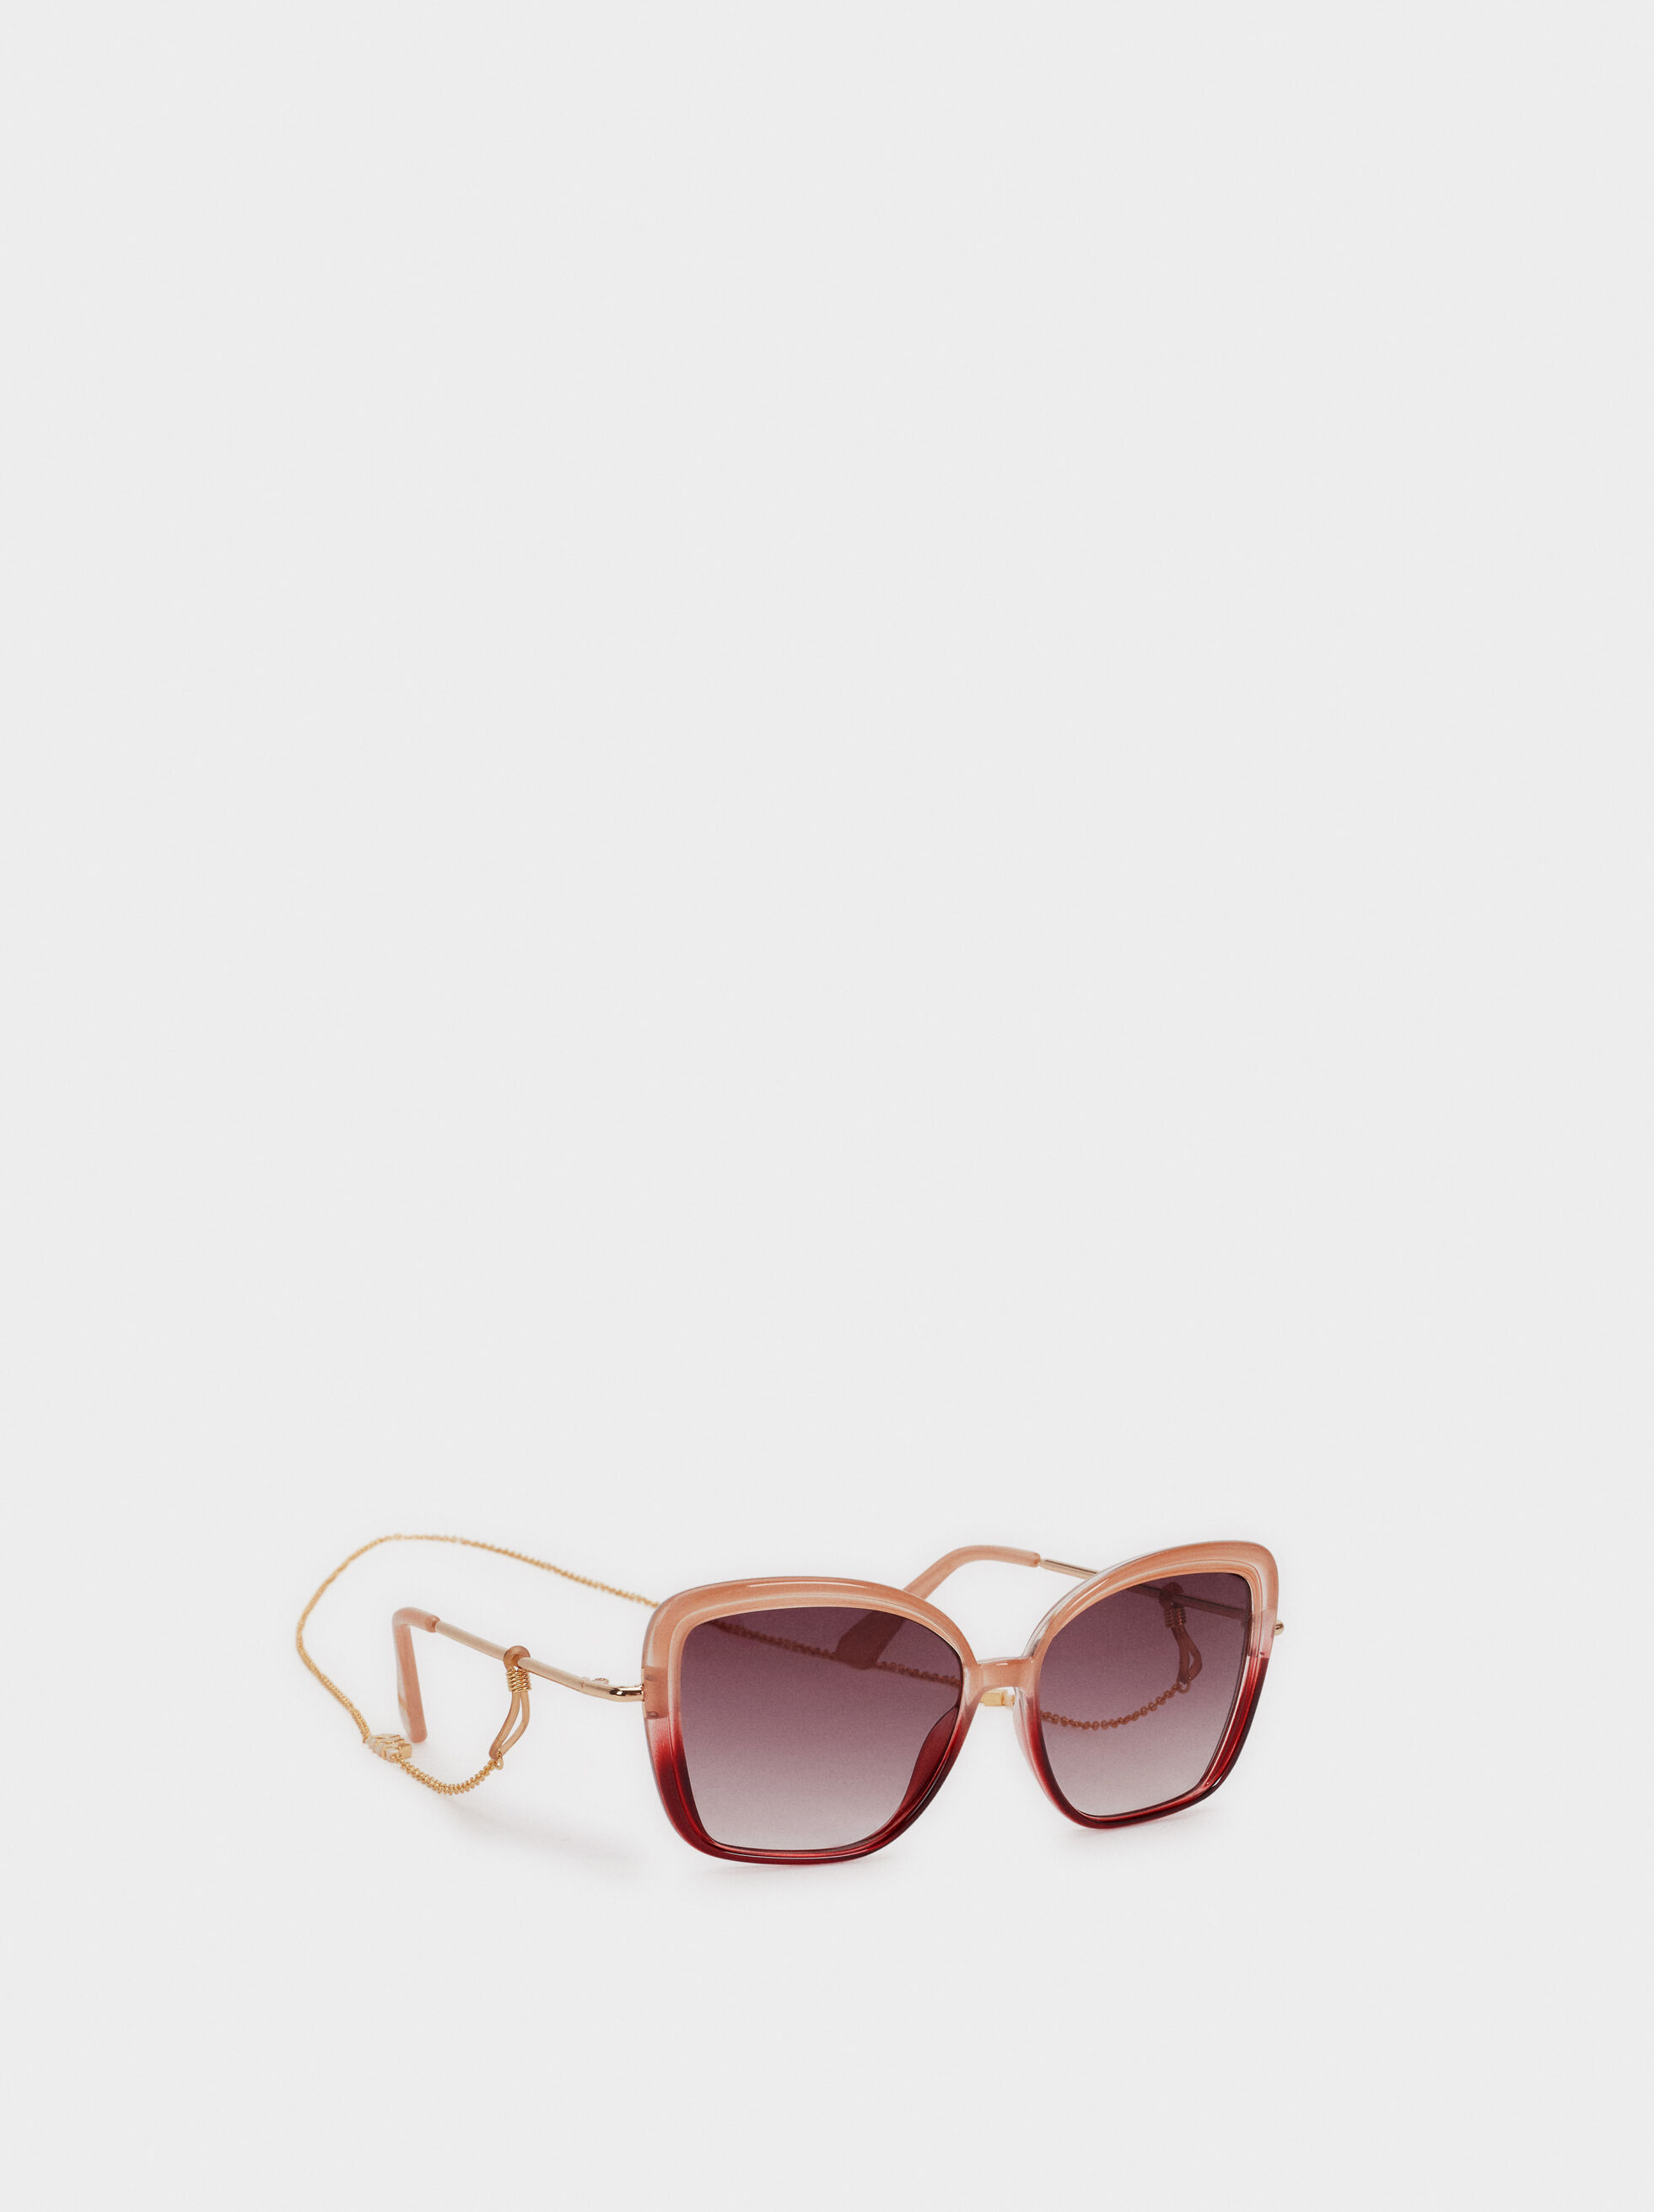 Resin Sunglasses With Chain, Pink, hi-res